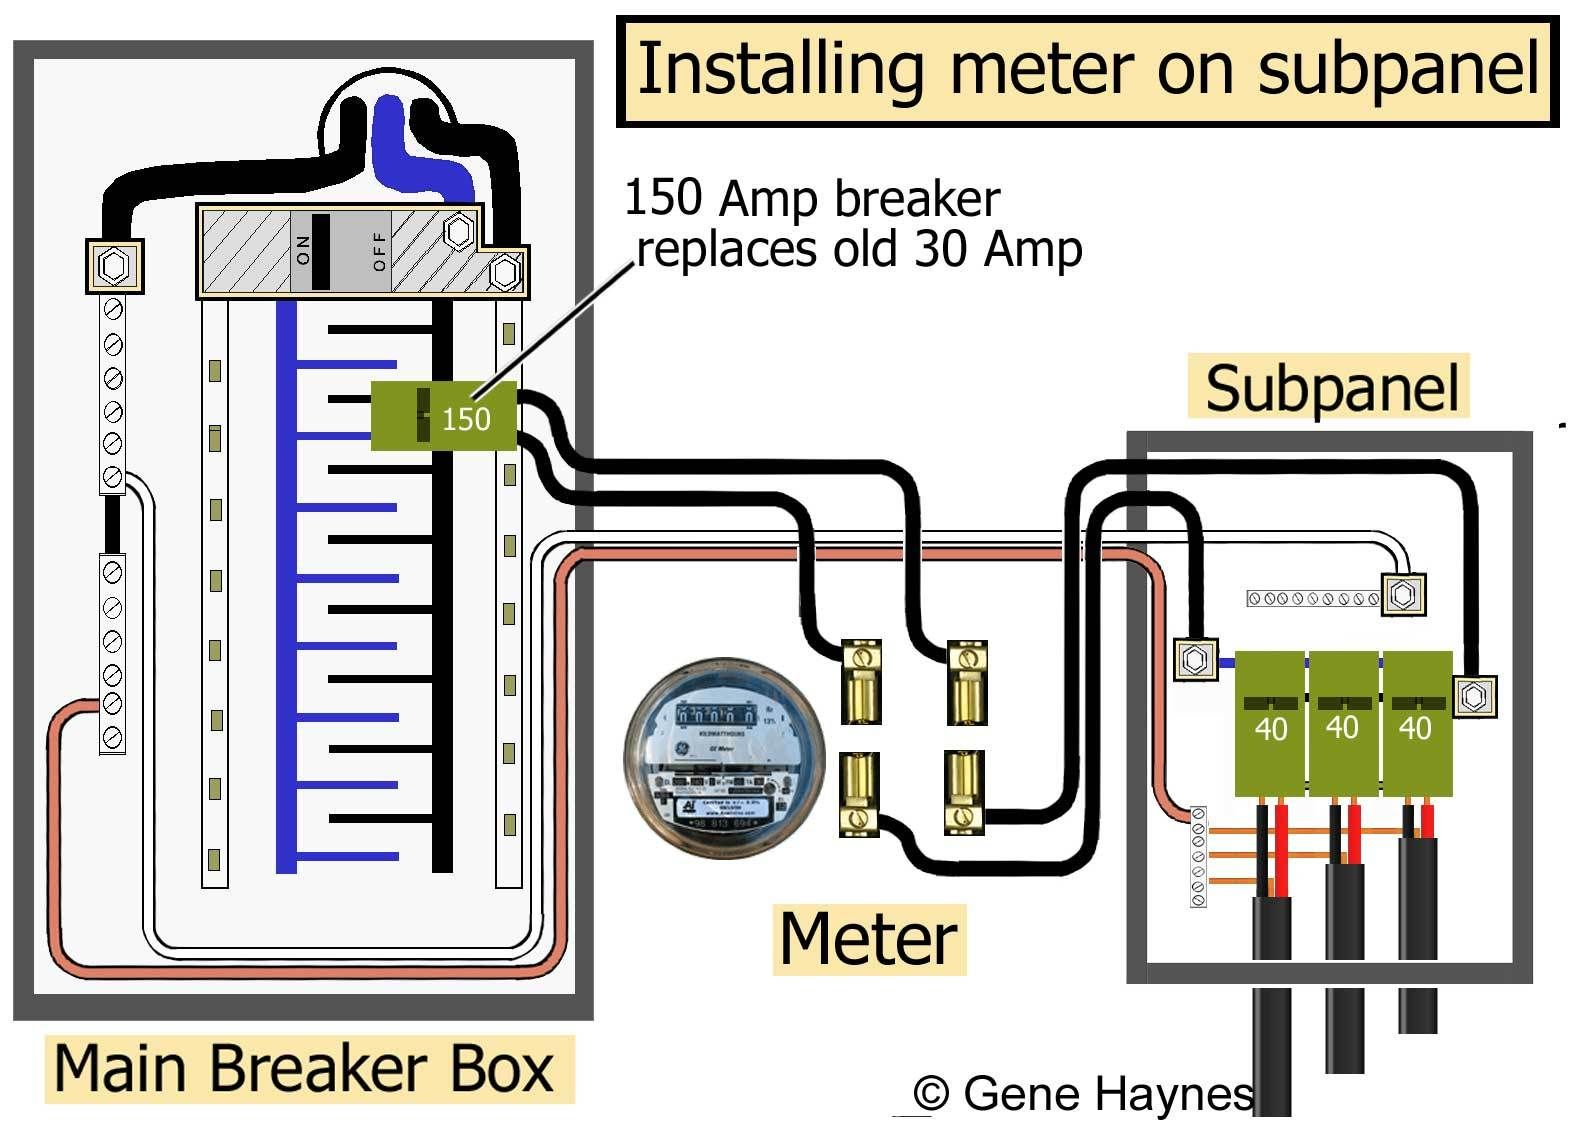 Fine Electric Sub Meter Wiring Diagram Wirdig Wiring Diagram Wiring Digital Resources Indicompassionincorg